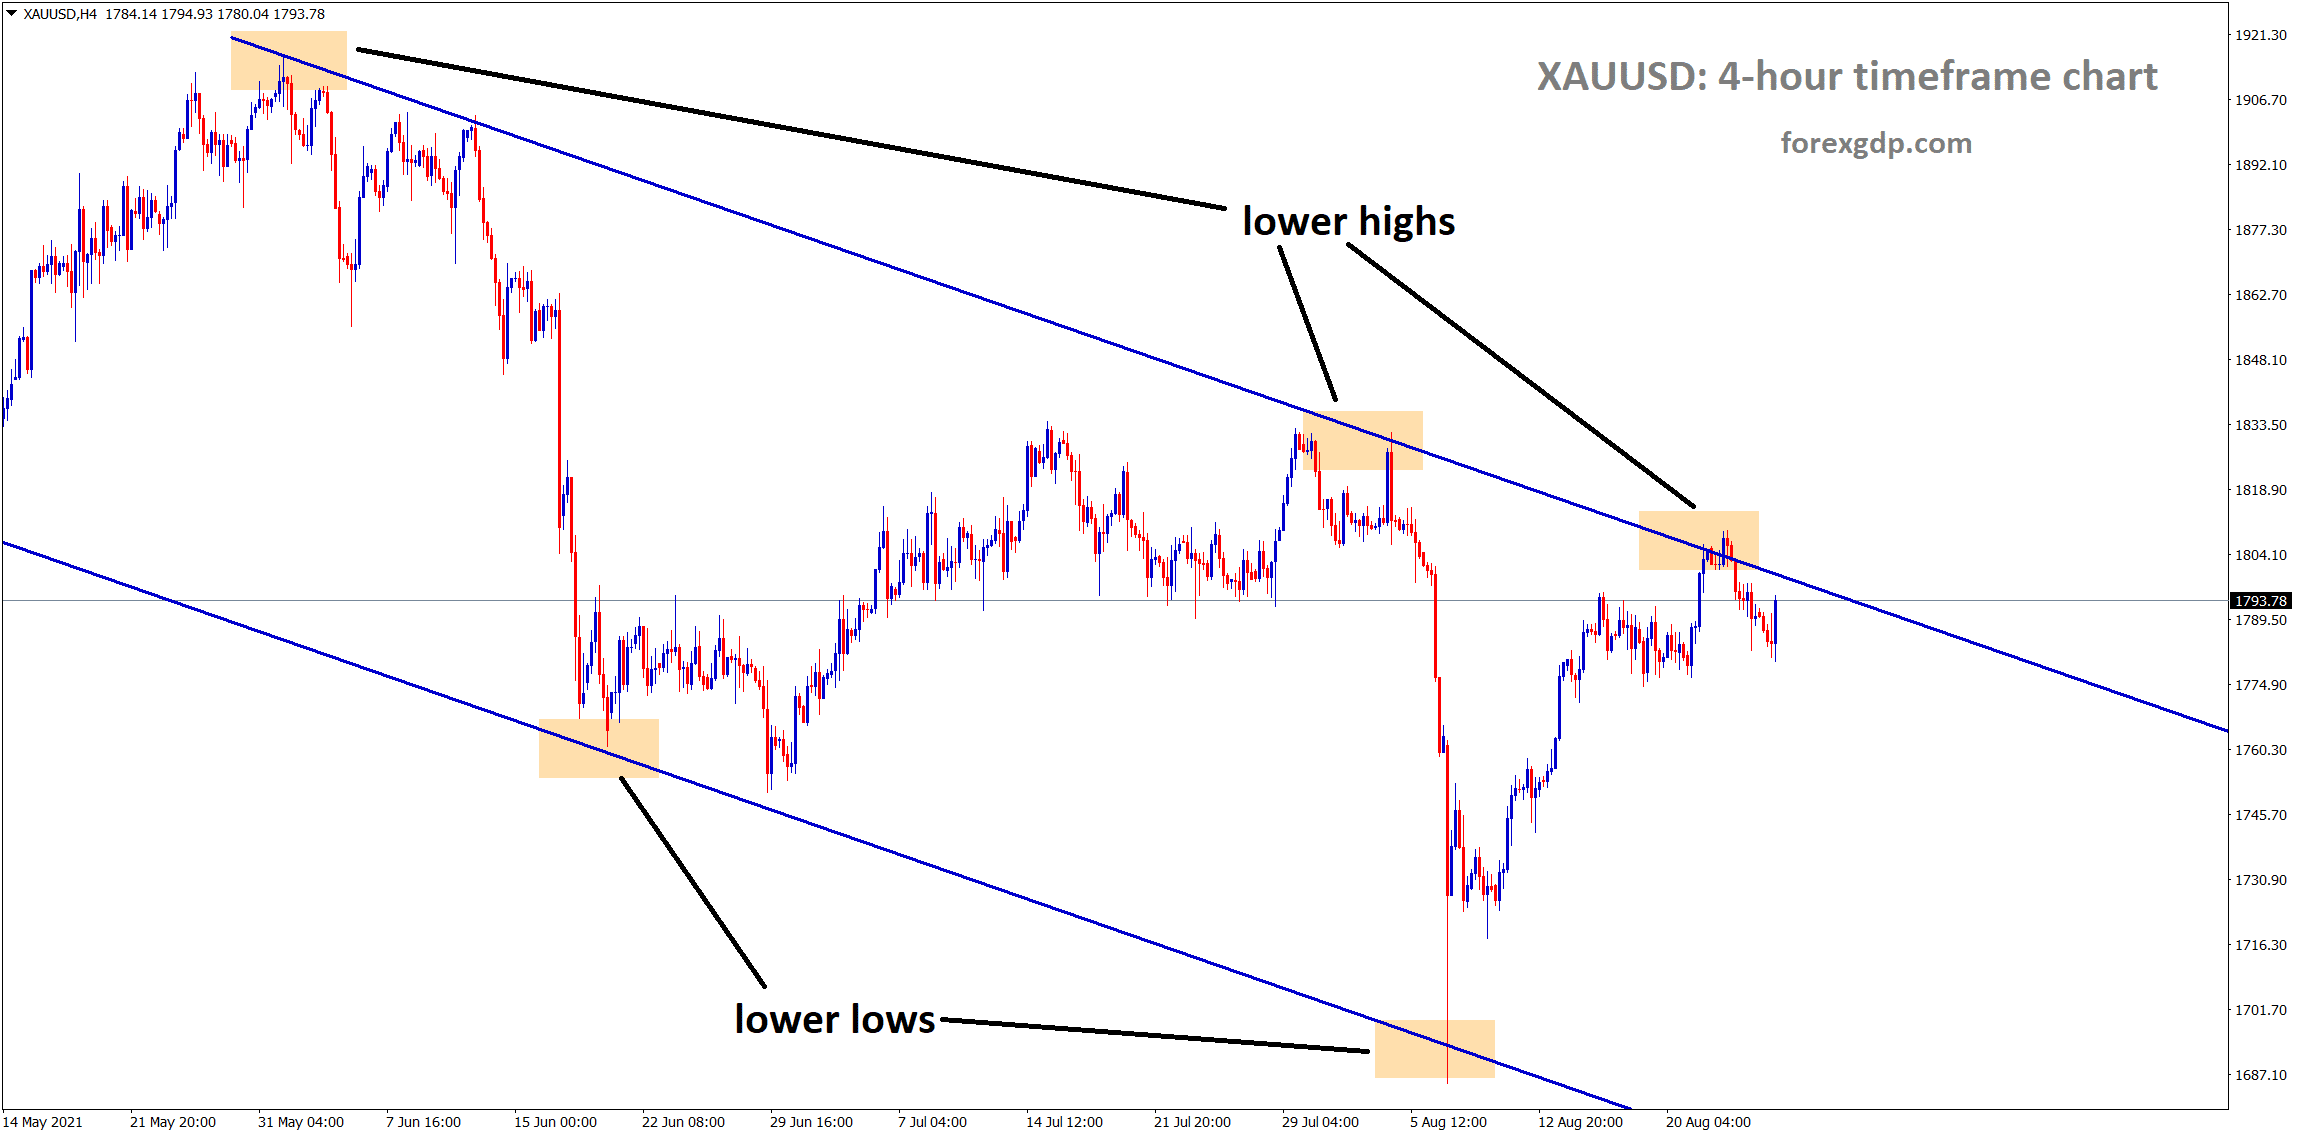 Gold is consolidating now at the lower high area of the descending channel